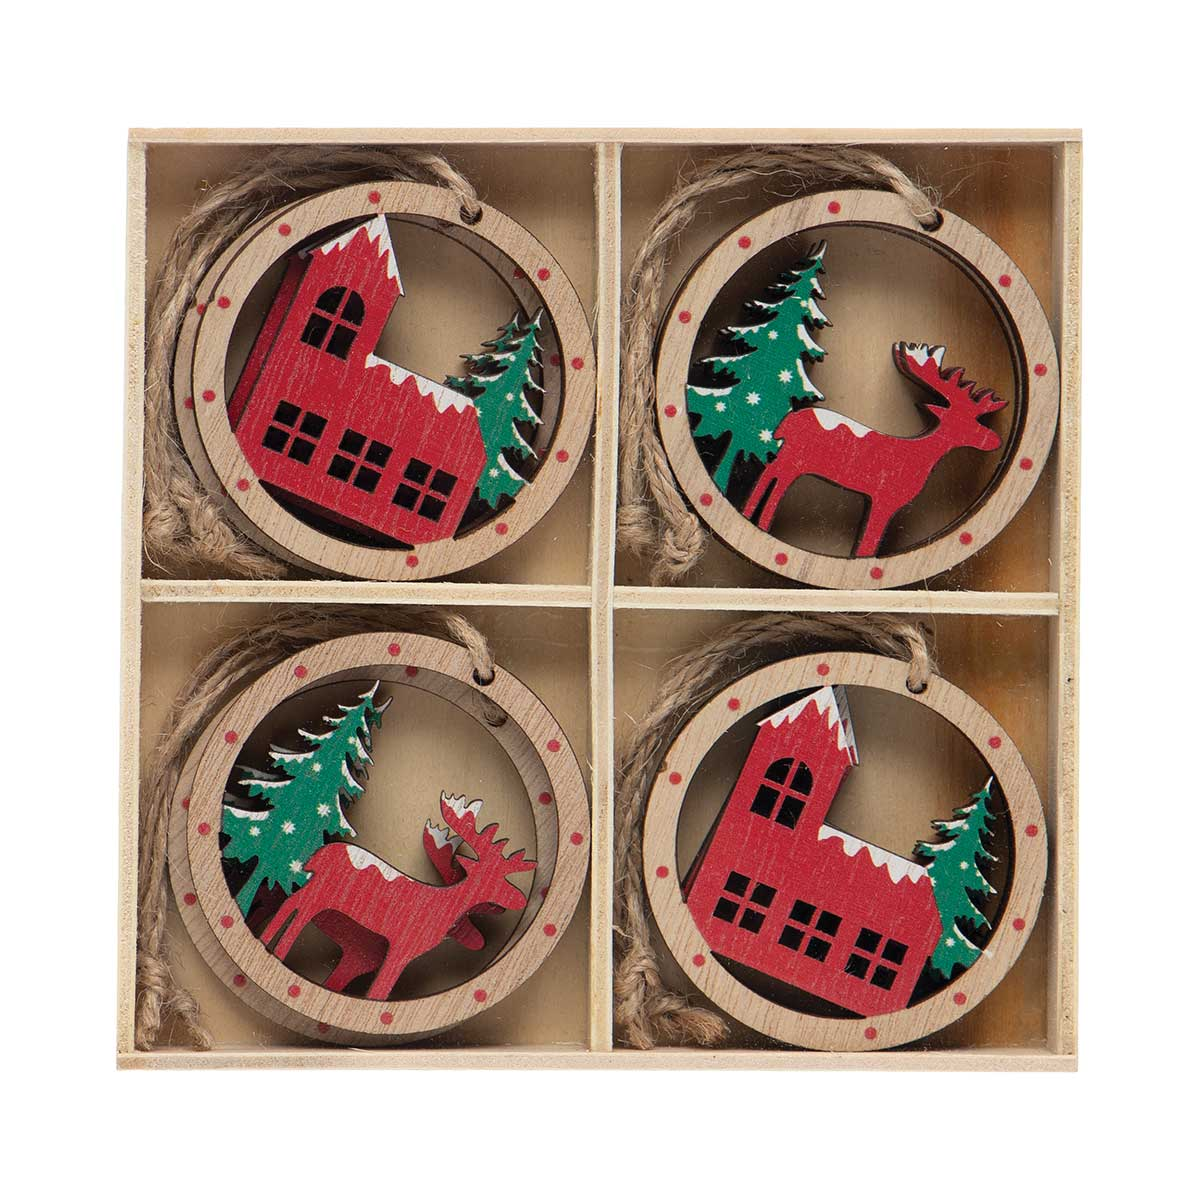 ALPINE HOUSE AND REINDEER WOOD ORNAMENT RED/GREEN